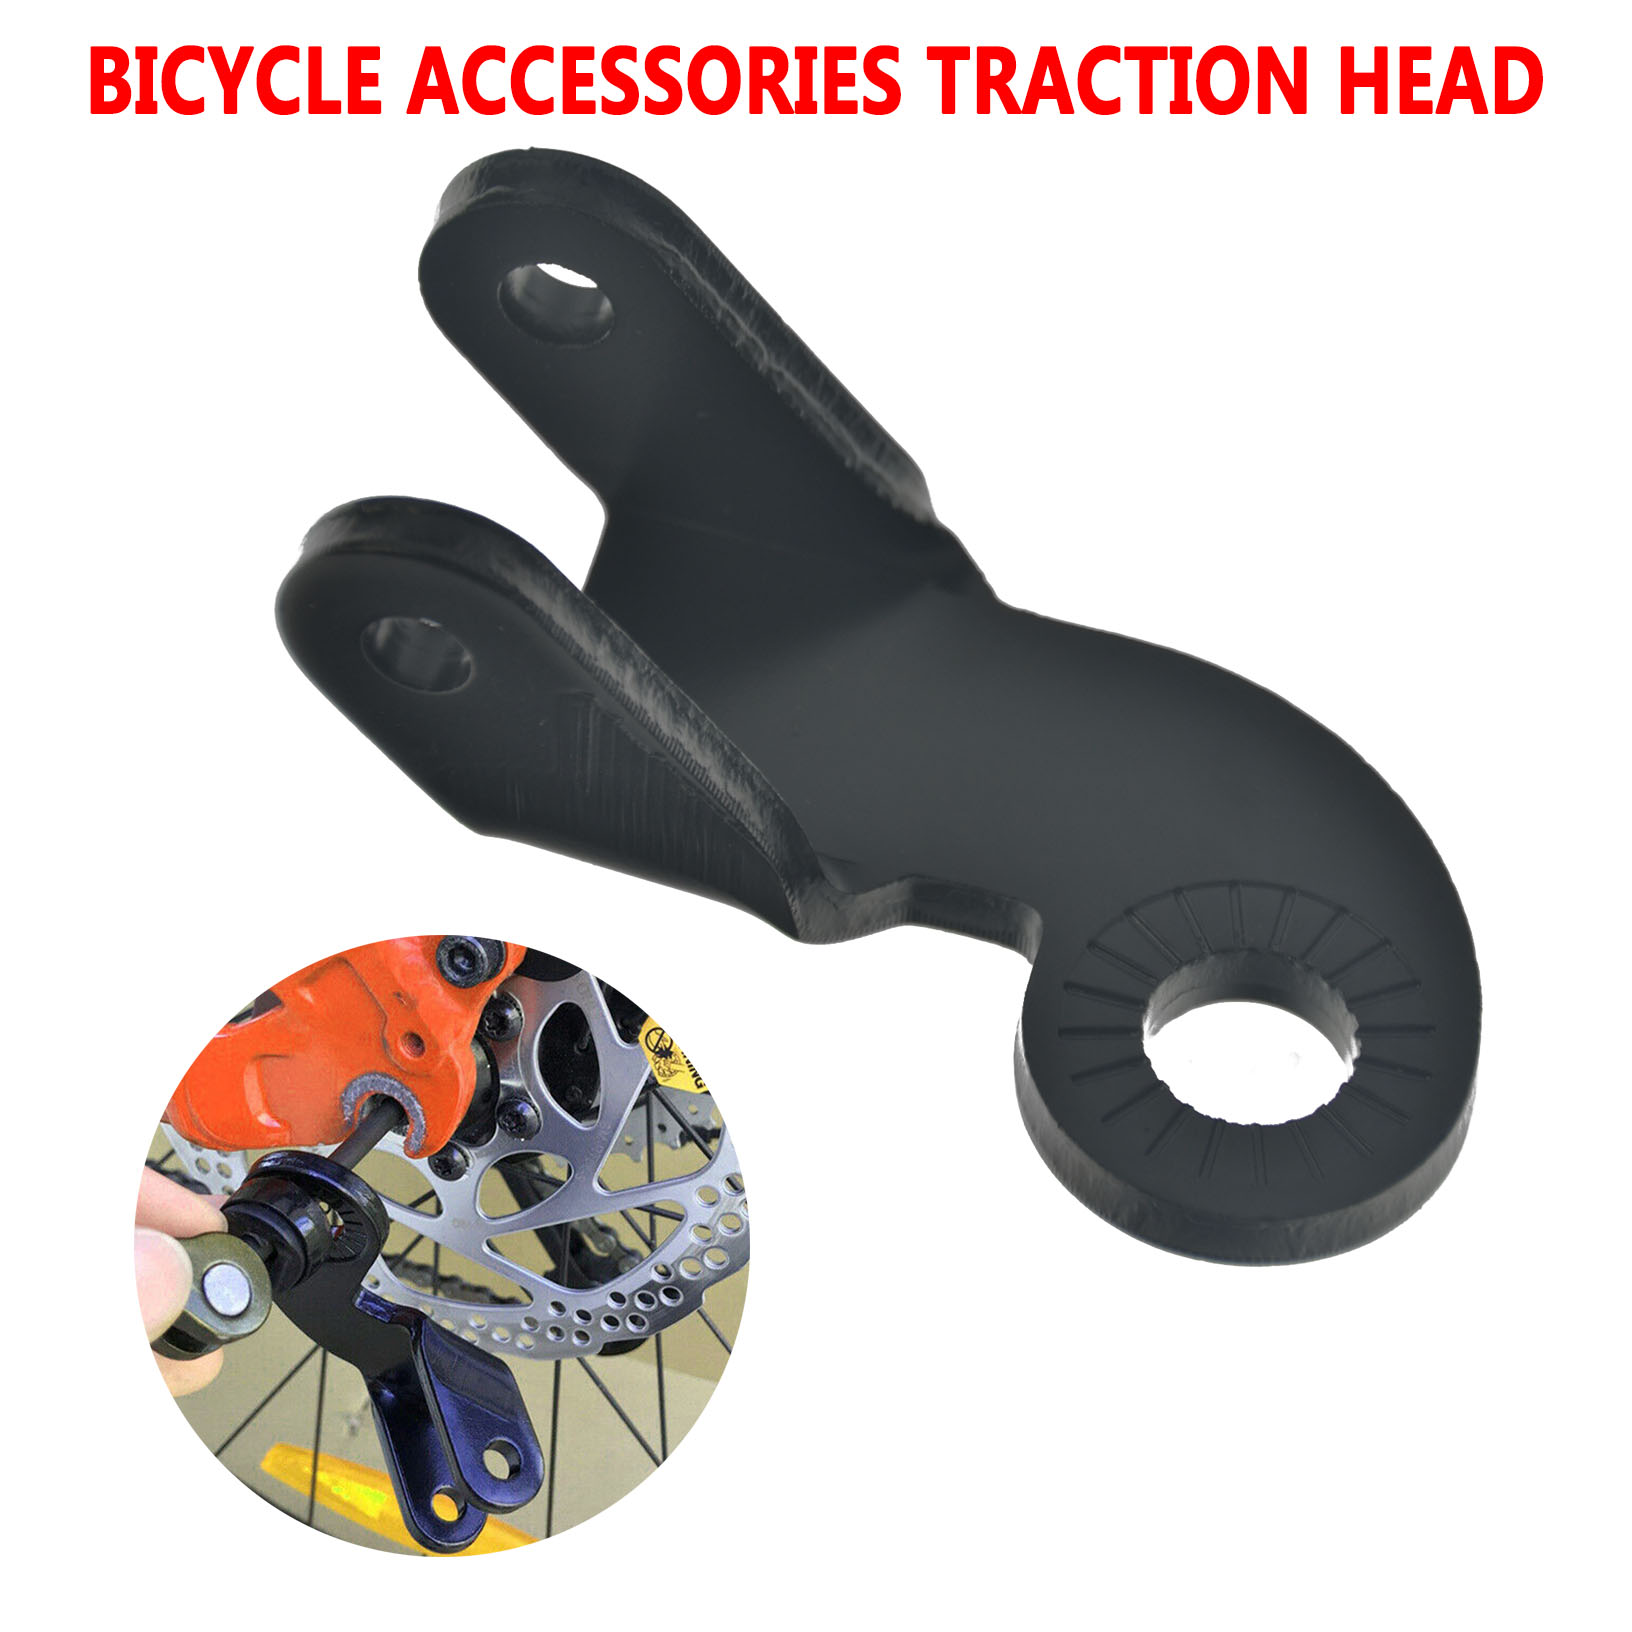 Steel Bicycle Bike Trailer Coupler Attachment Angled Elbow For Burley Trailers *